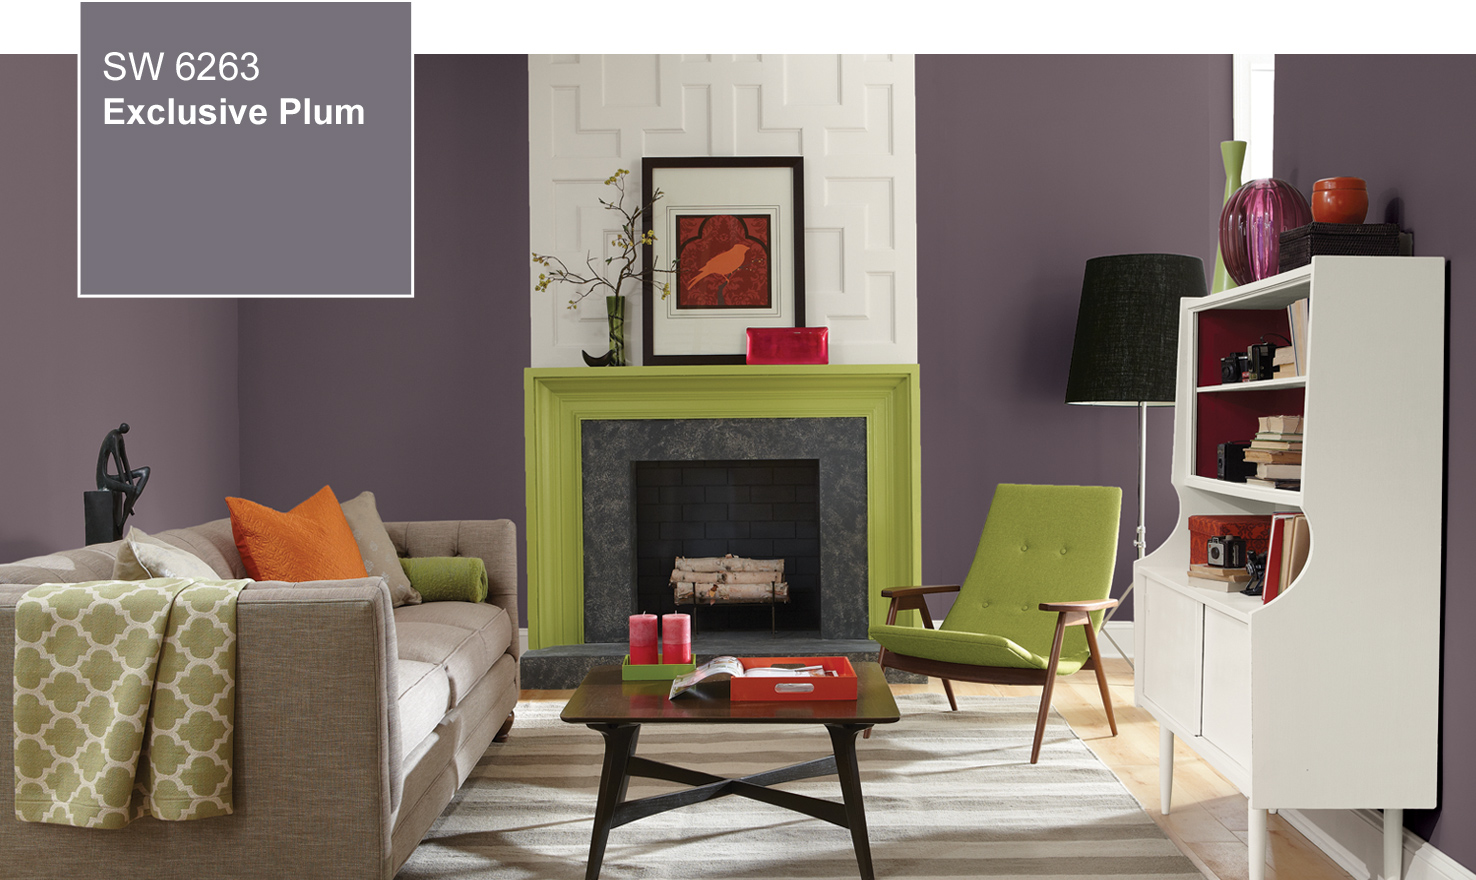 Design Dilemma: Violet is the New Beige